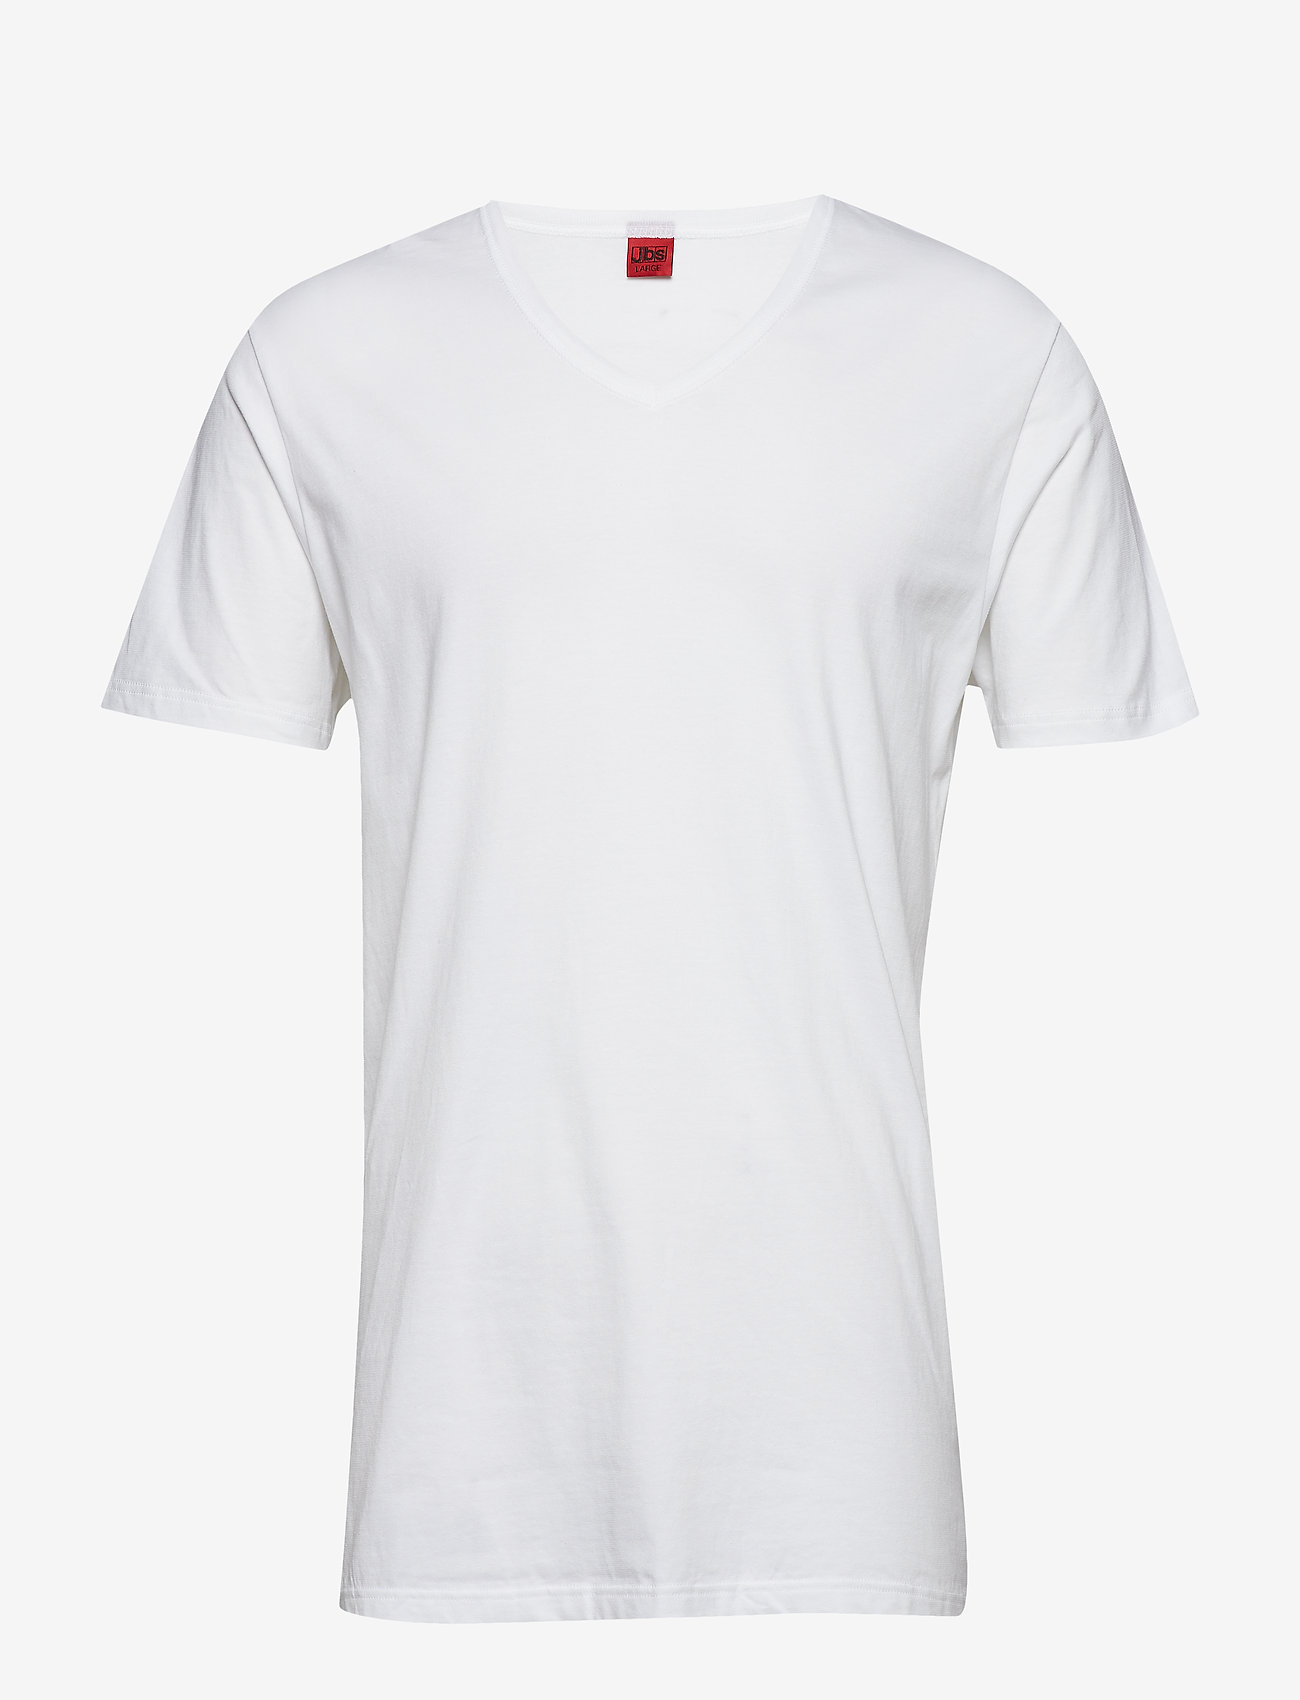 JBS - Basic v-neck tee - basic t-shirts - white